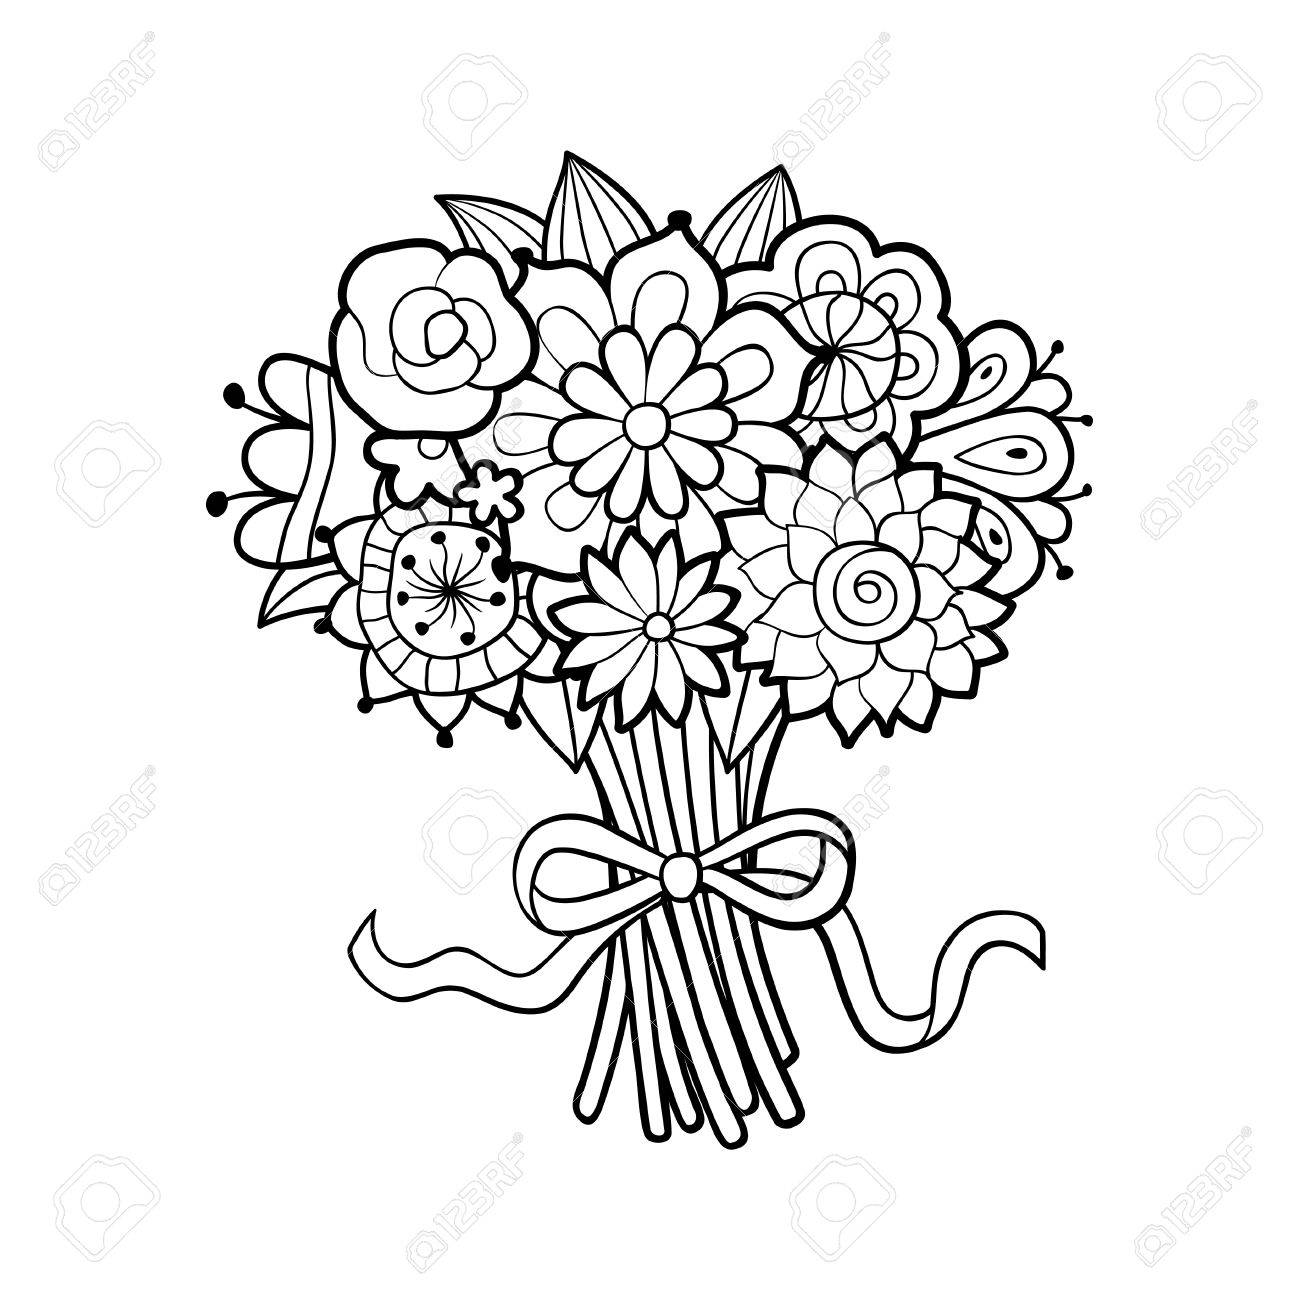 Flower Bouquet Decorated With Bow. Black And White Outline Vector ...